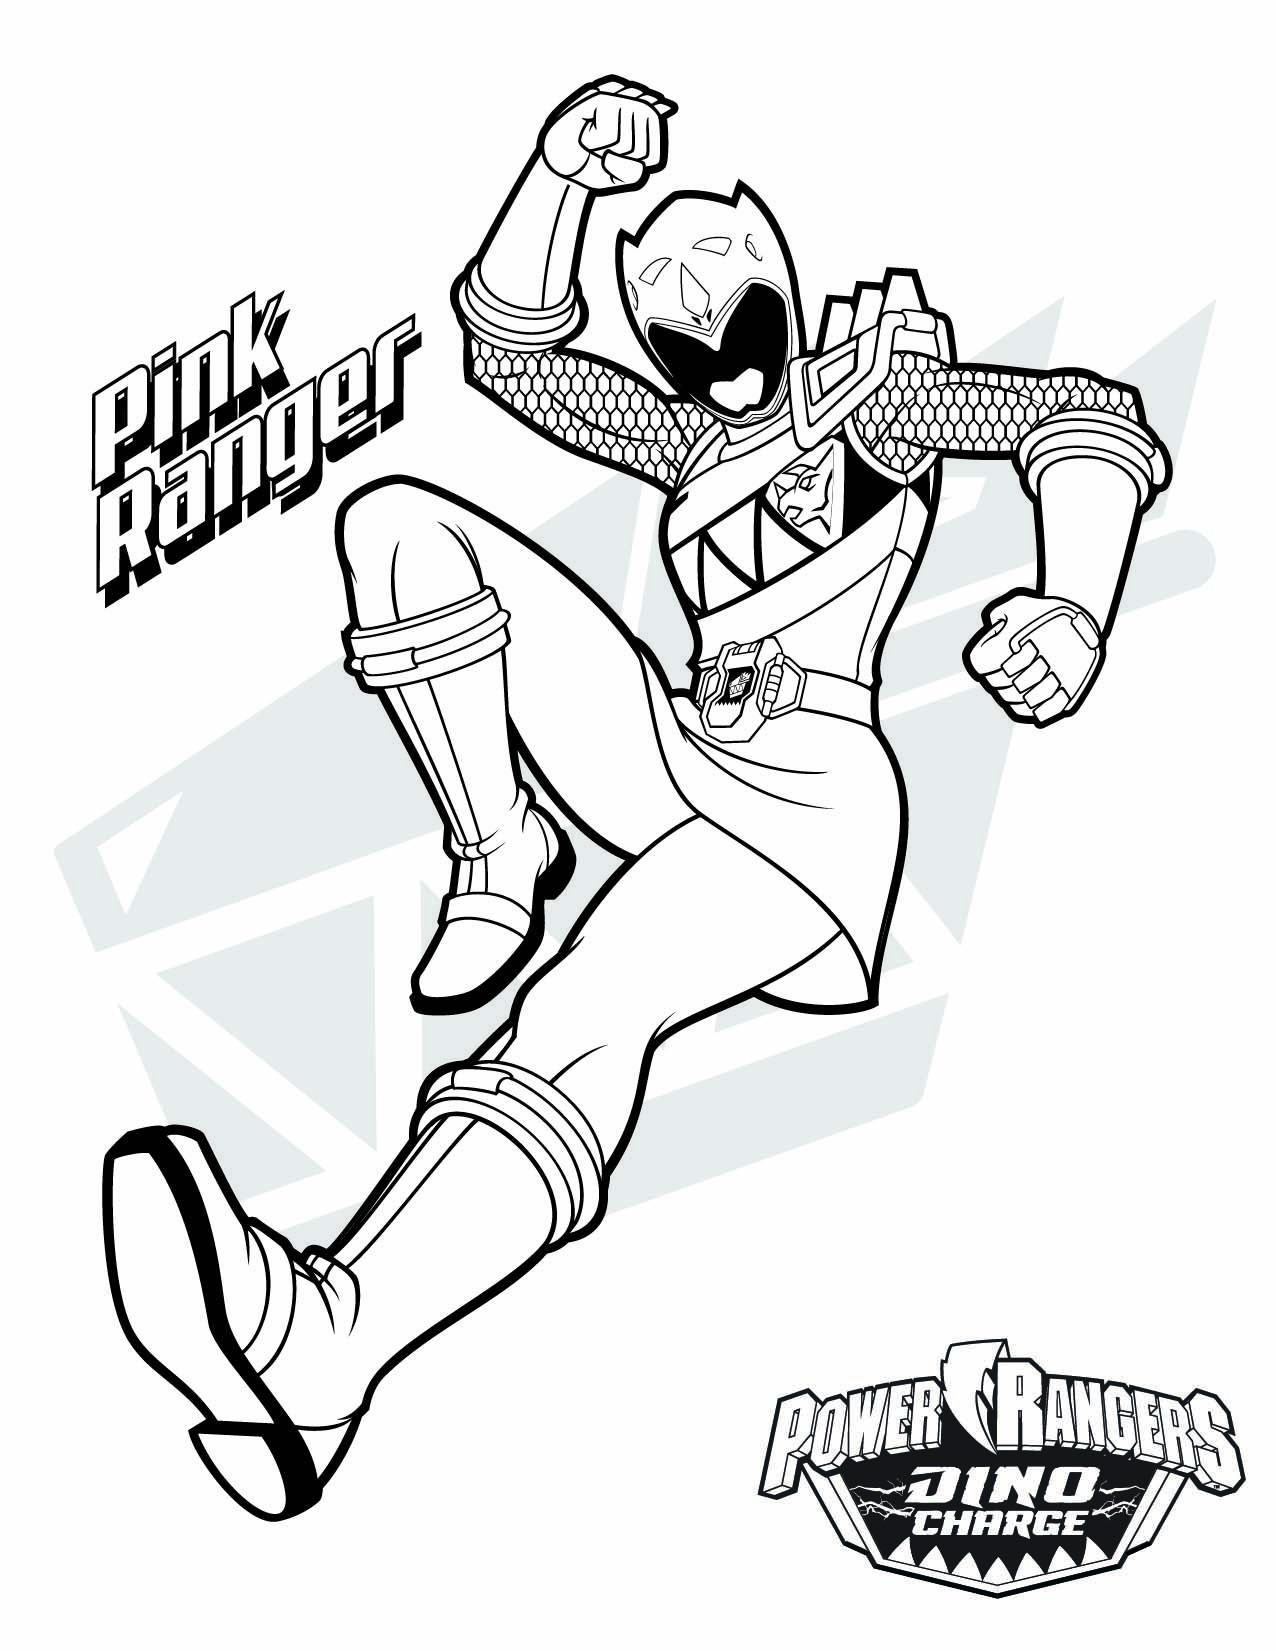 Uncategorized Power Ranger Coloring Games pink power ranger coloring page pages of epicness download them all httpwww powerrangers com